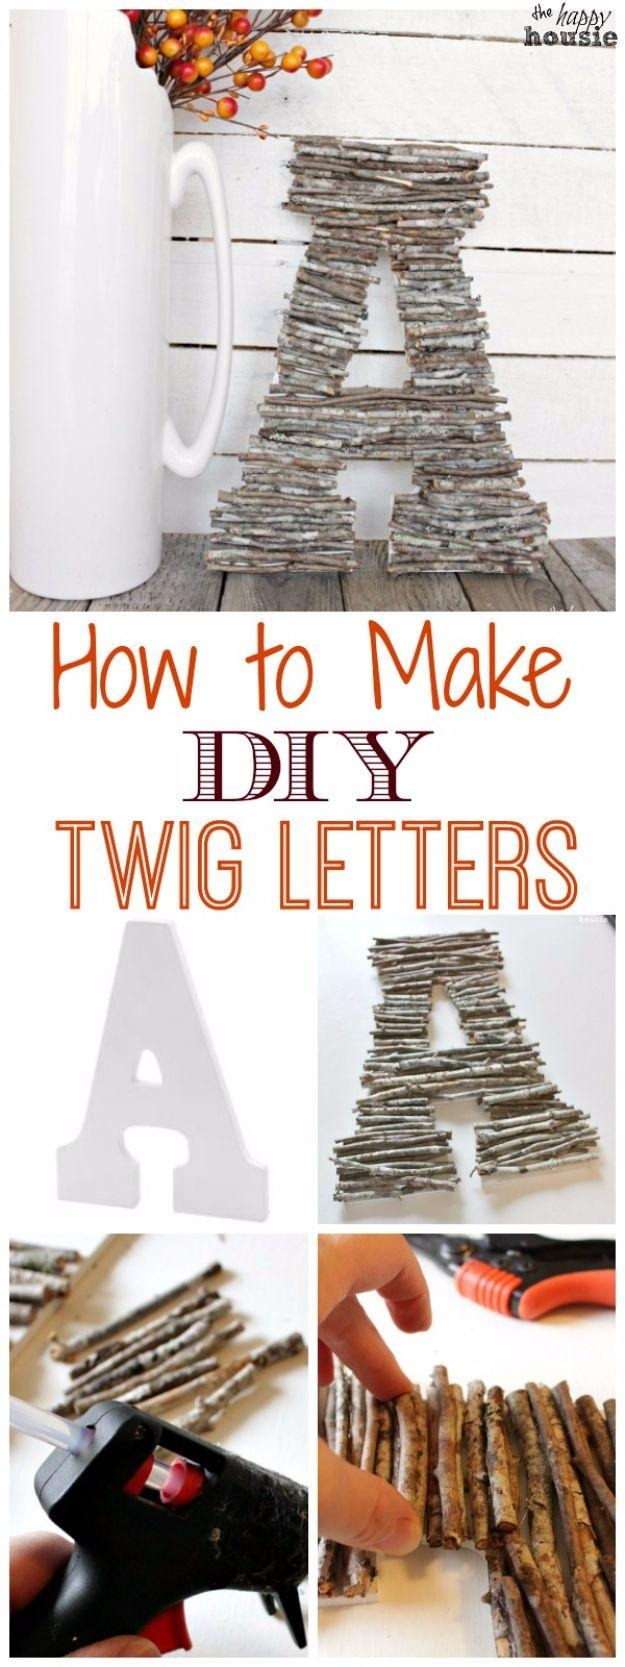 Get 20+ Decorative Wall Letters Ideas On Pinterest Without Signing Pertaining To Decorative Initials Wall Art (Image 8 of 20)